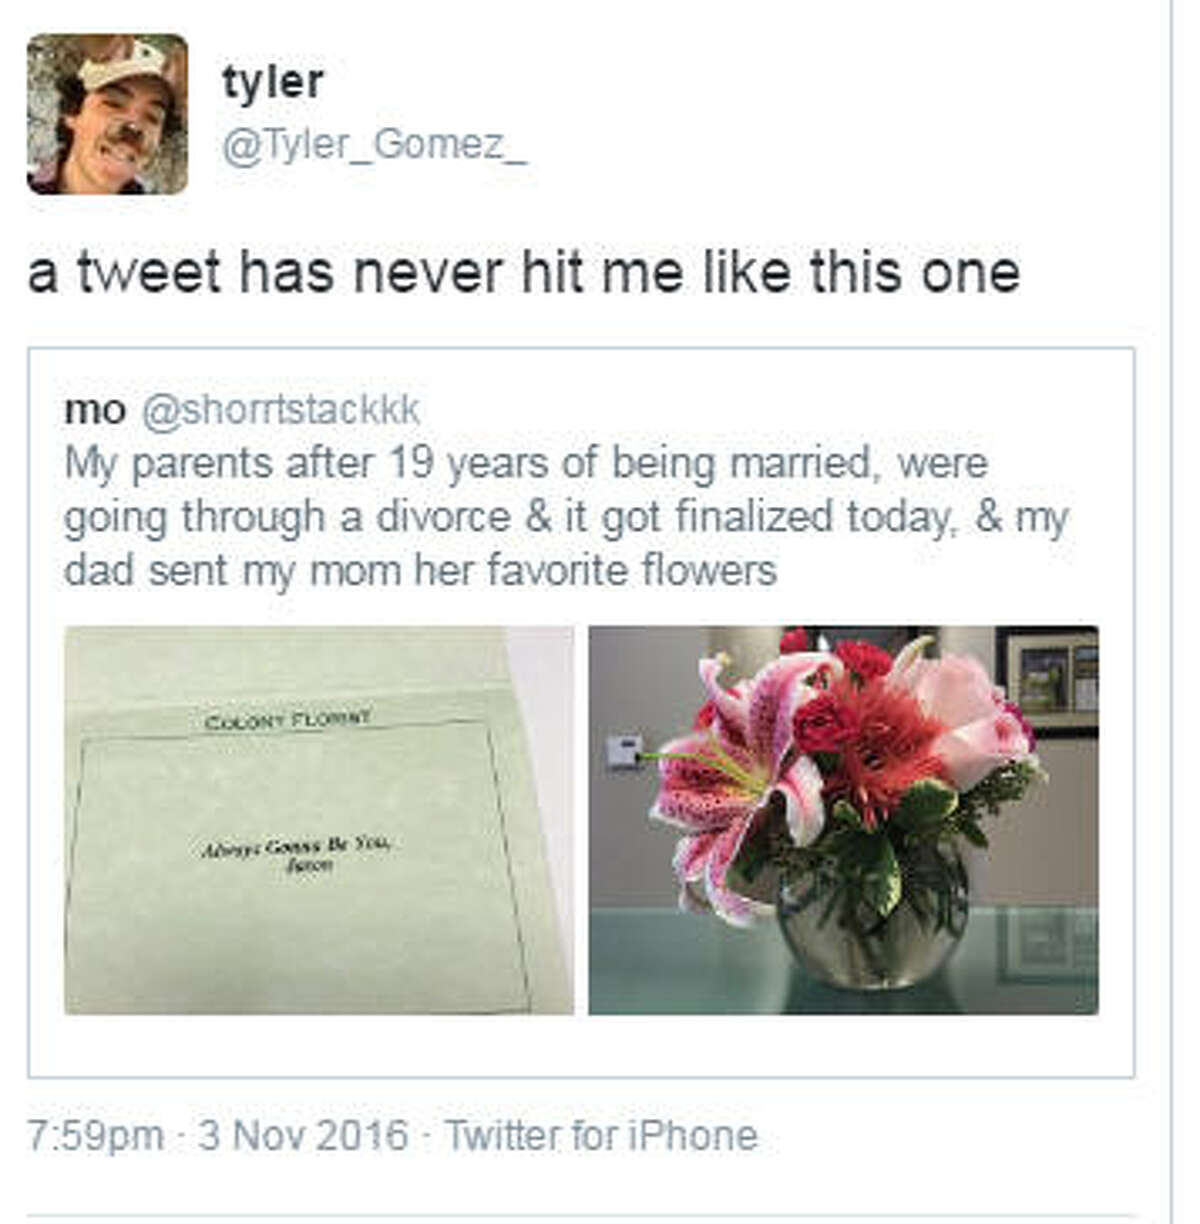 A Pearland teen's tweet with a photo of flowers her dad sent her mom on their divorce day, Nov. 3, 2016, drew reaction worldwide. On Nov. 8, it had received 76,888 retweets and 230,039 likes. Earlier, she asked anyone with a dog to send her pictures because she felt sad and got many in response.